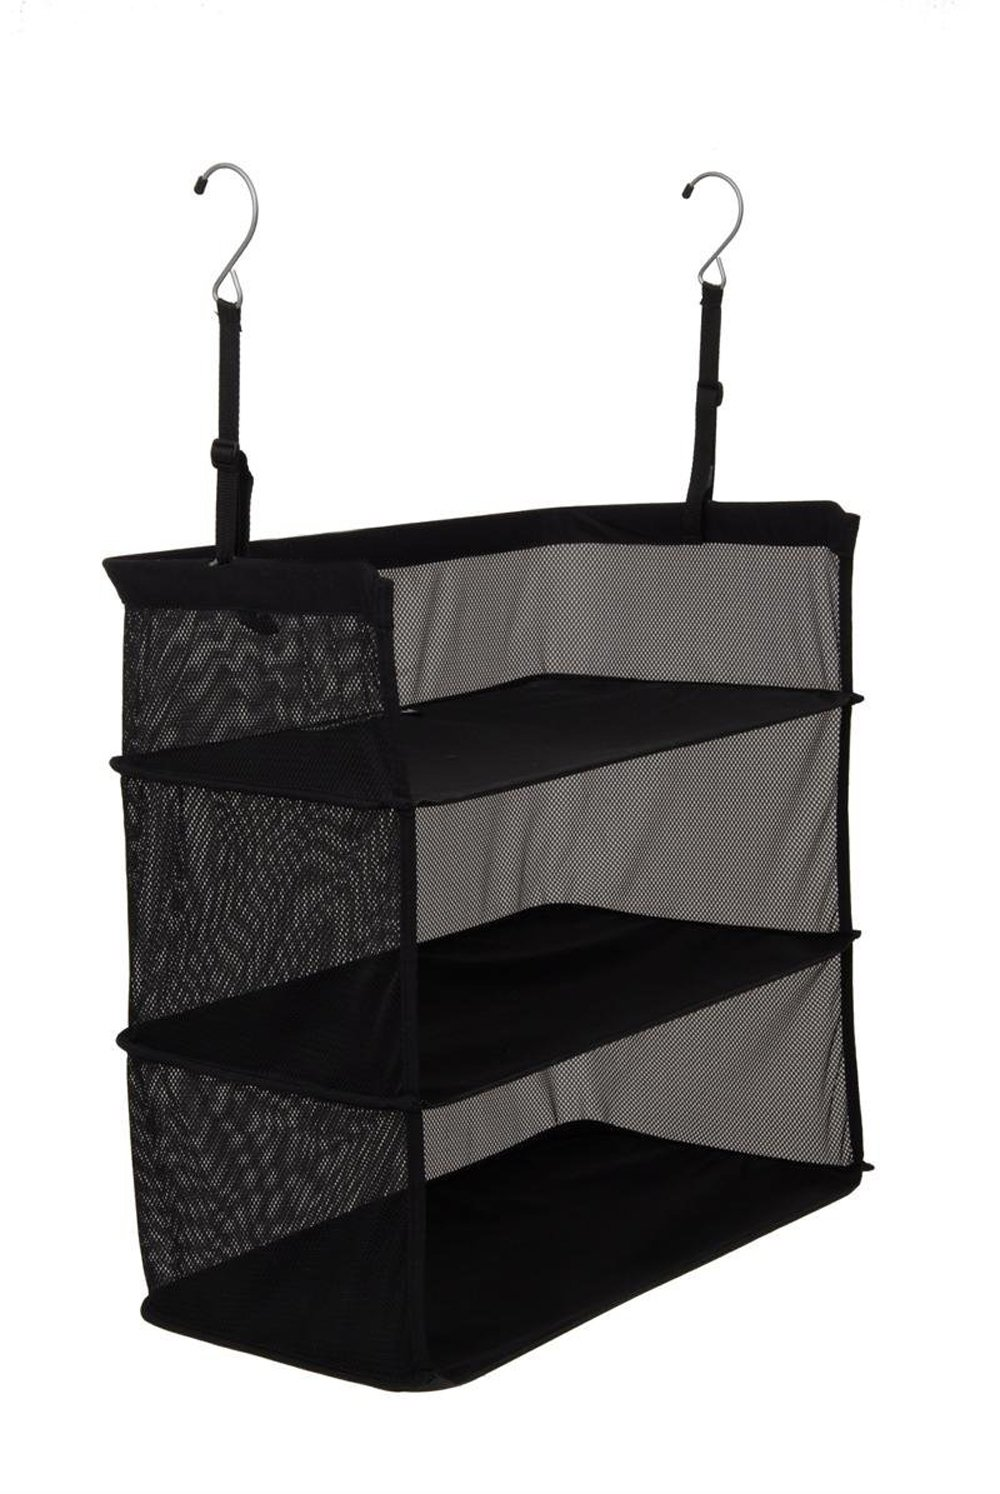 TopEva Deluxe Packable Shelves Haning Closet Organizer